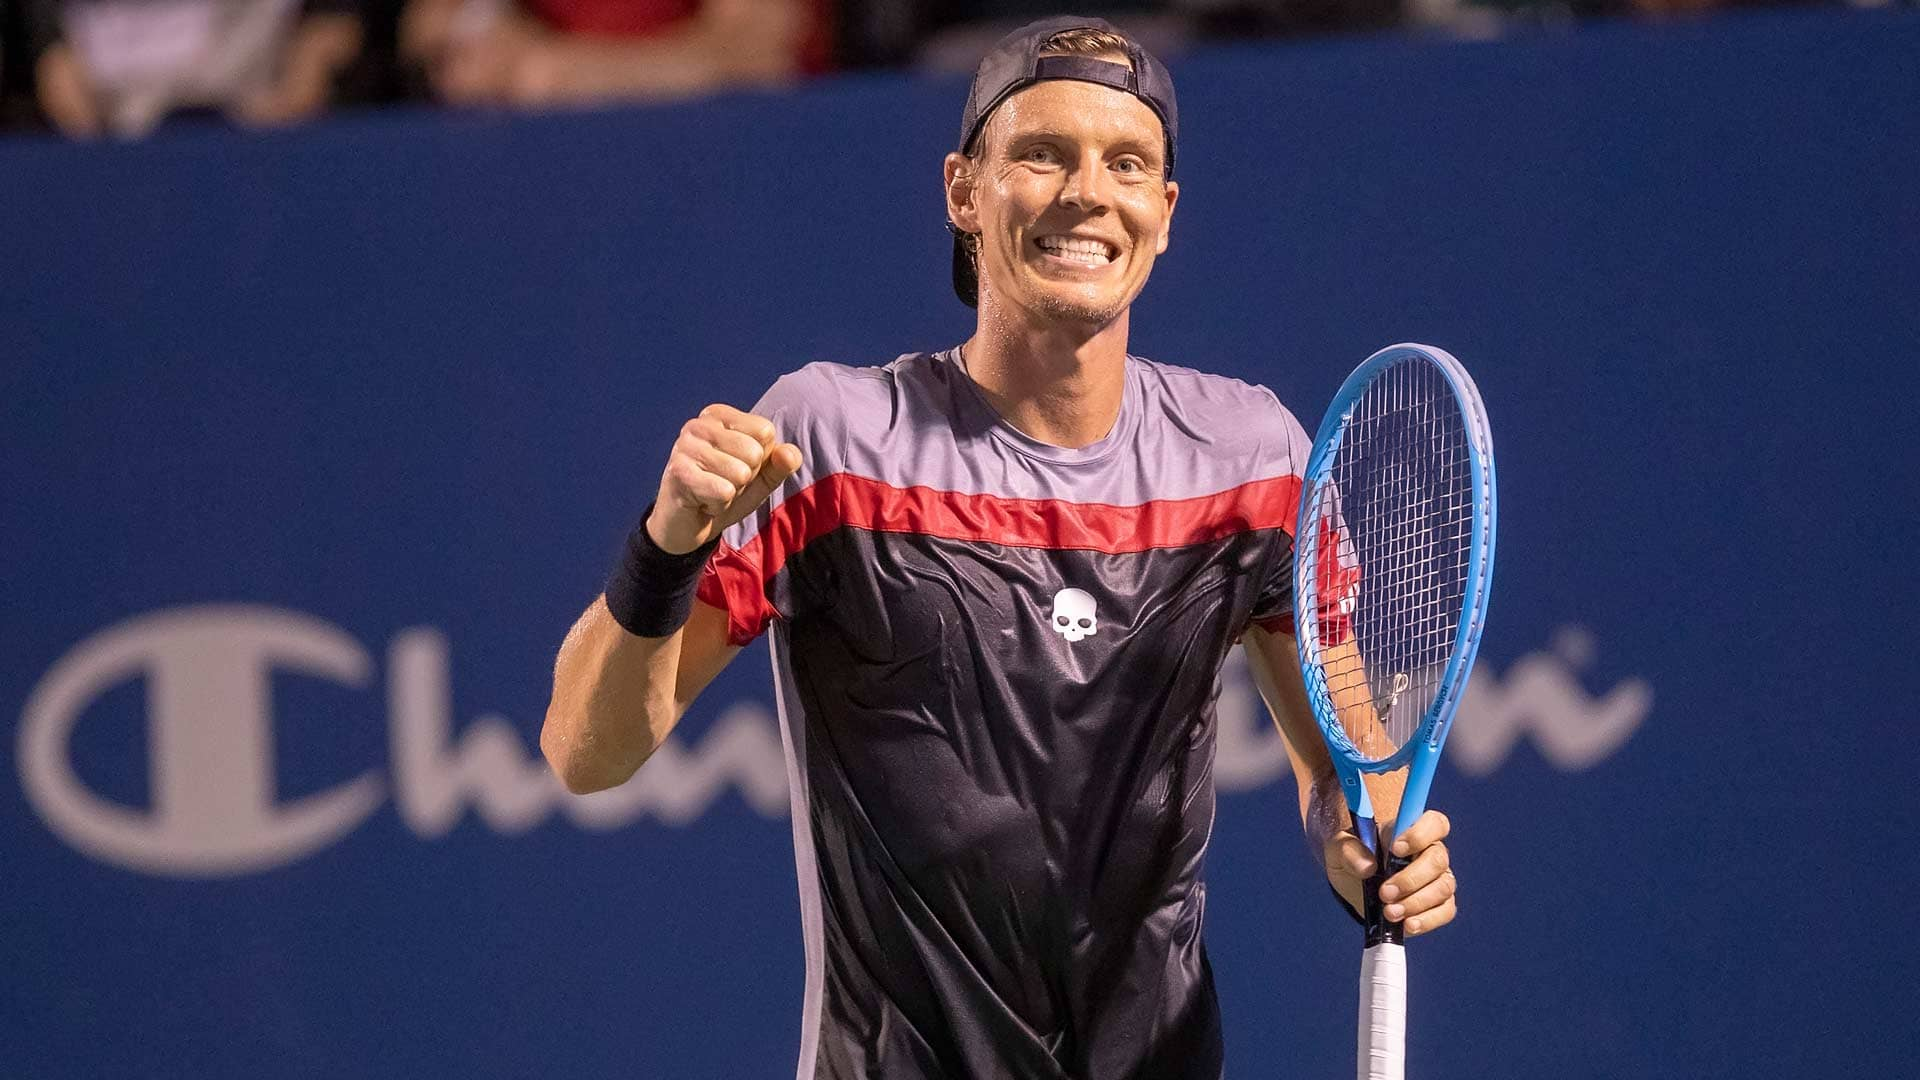 Tomas Berdych celebrates in Winston-Salem 2019